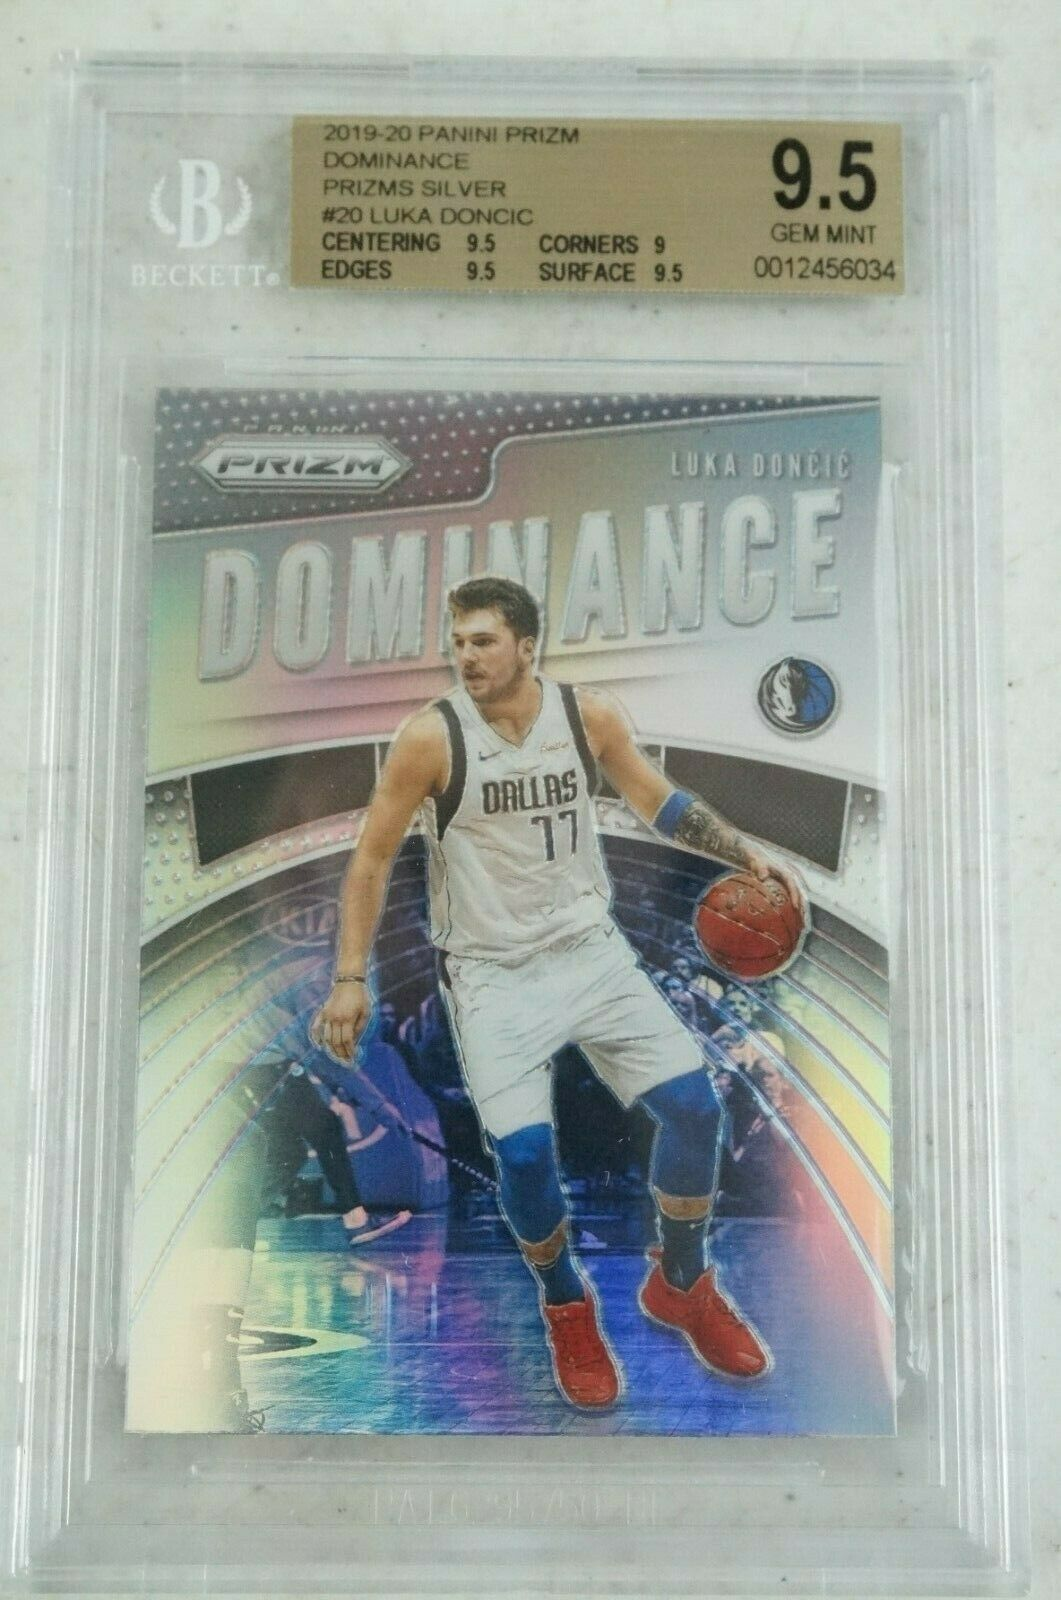 Primary image for 2019-20 Panini Prizm Silver Luka Doncic Dominance #20 BGS 9.5 Gem Mint